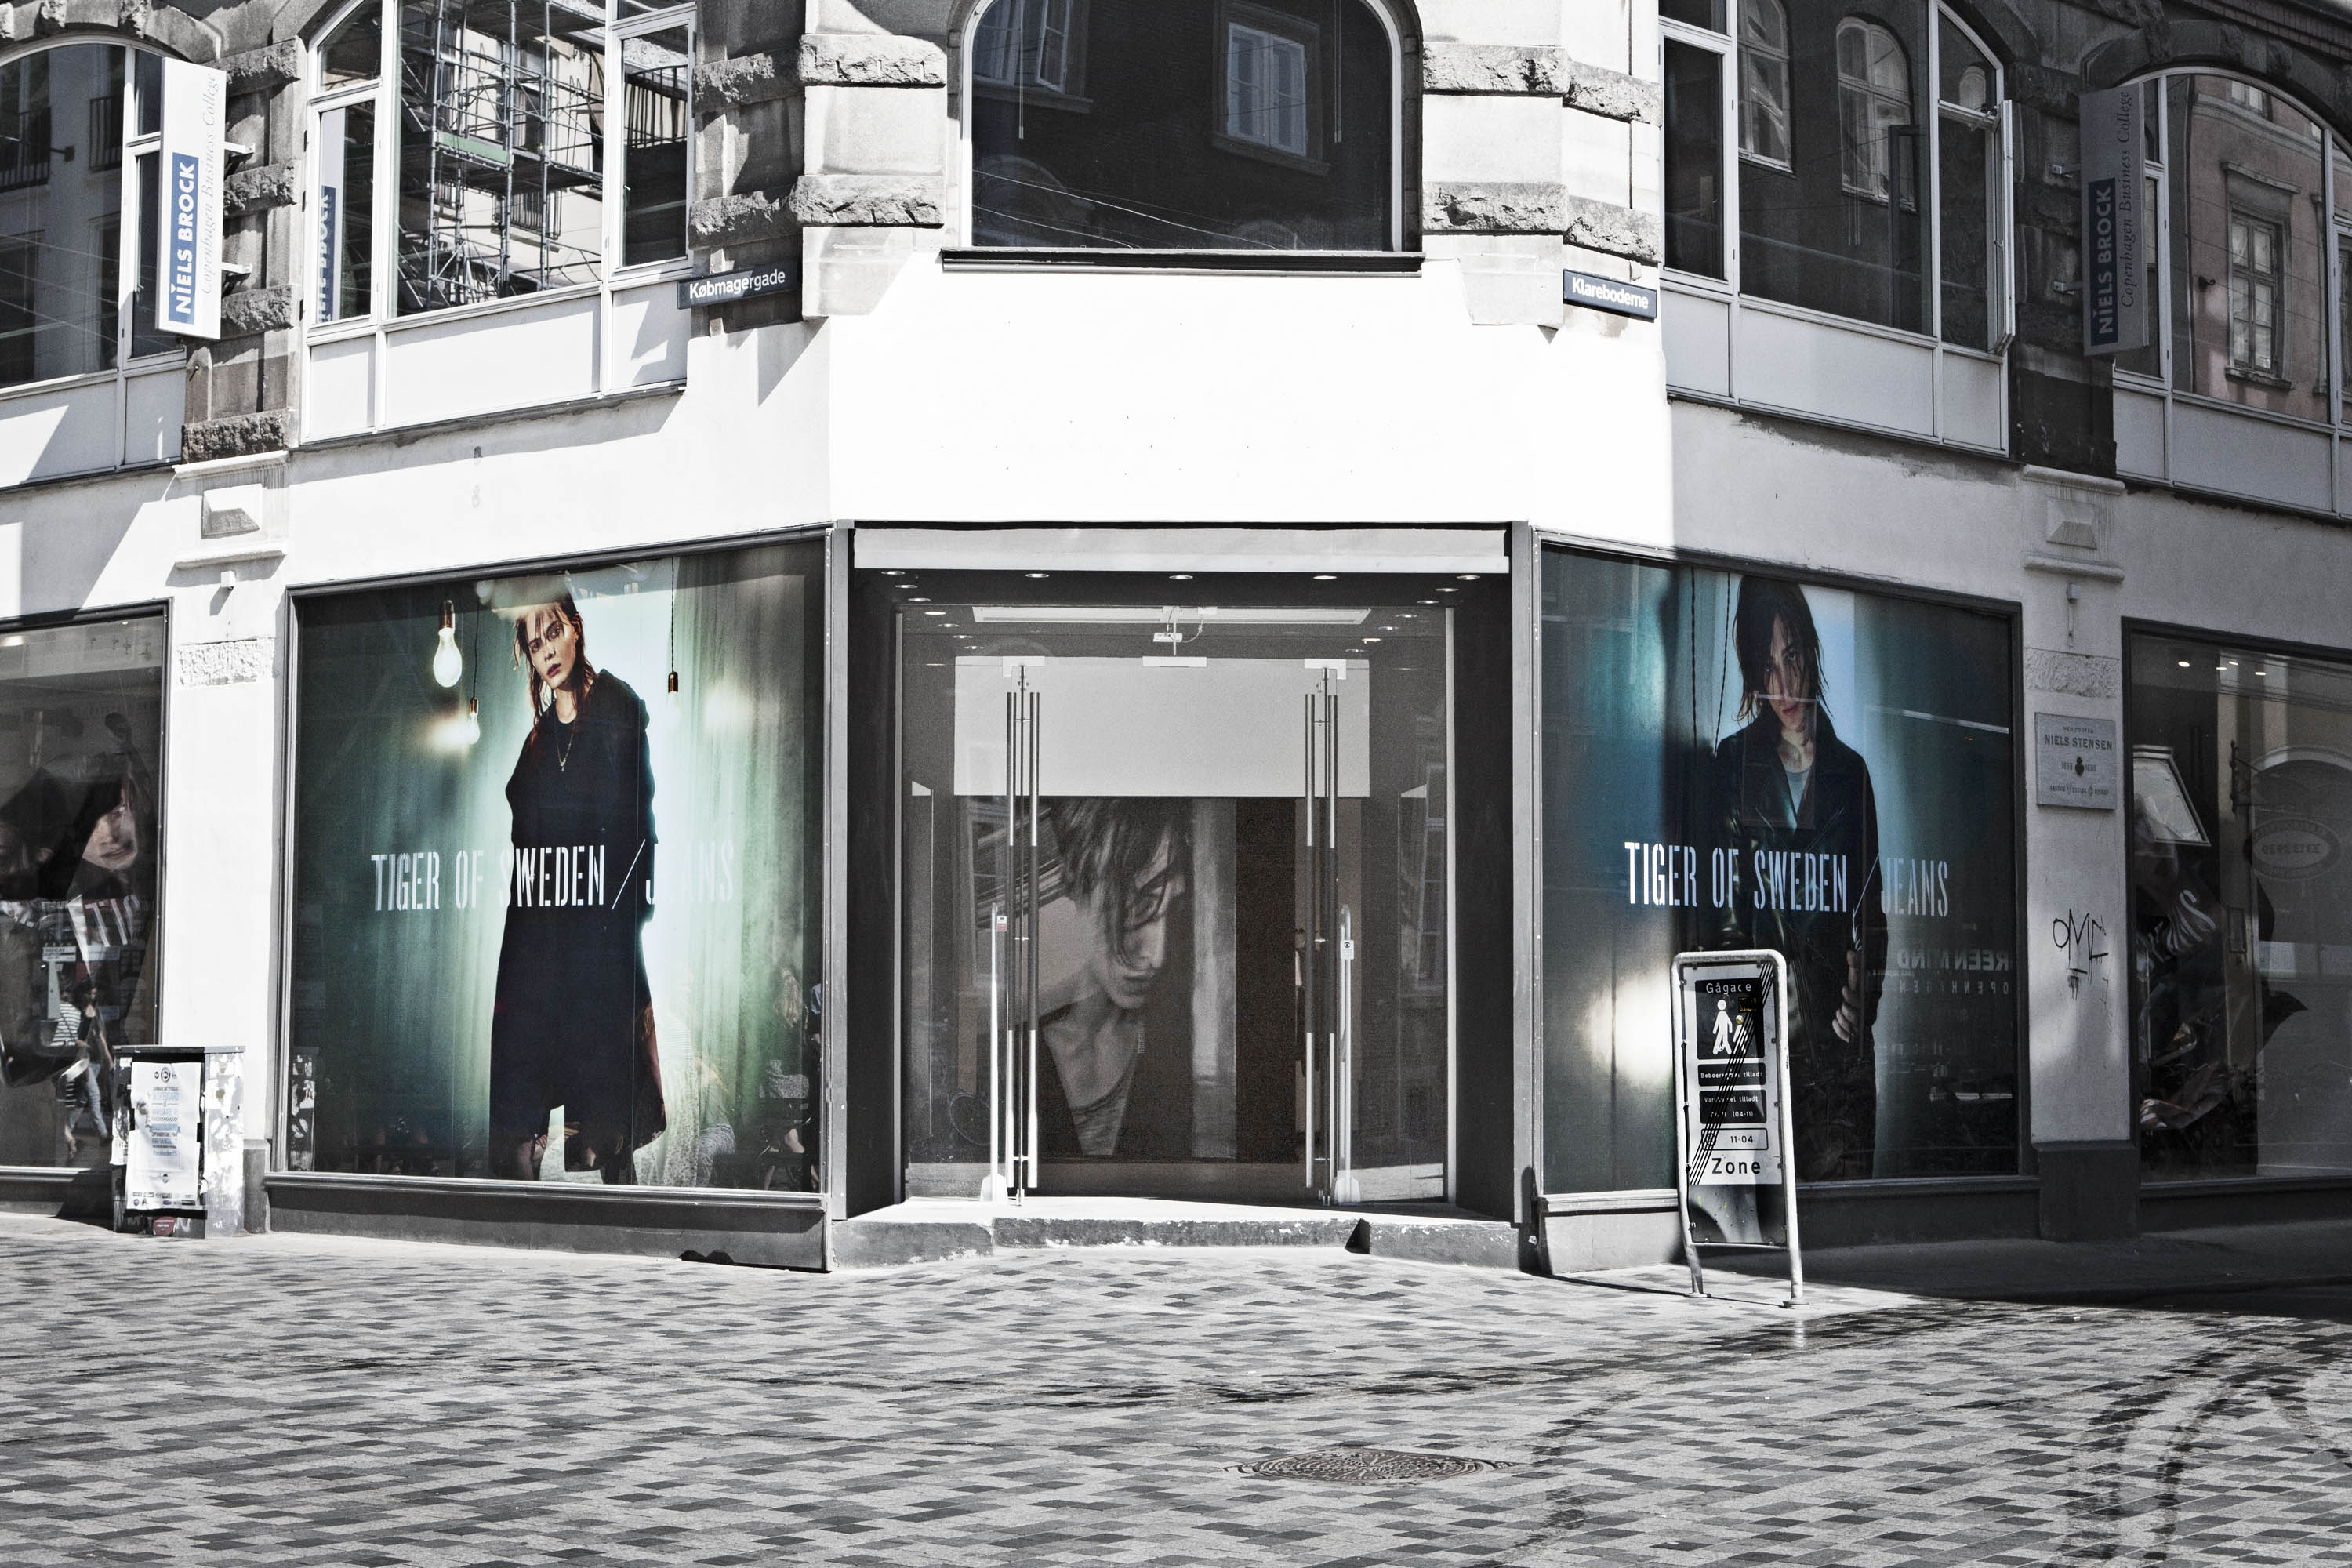 A rendering of Tiger of Sweden Jeans' store in Copenhagen